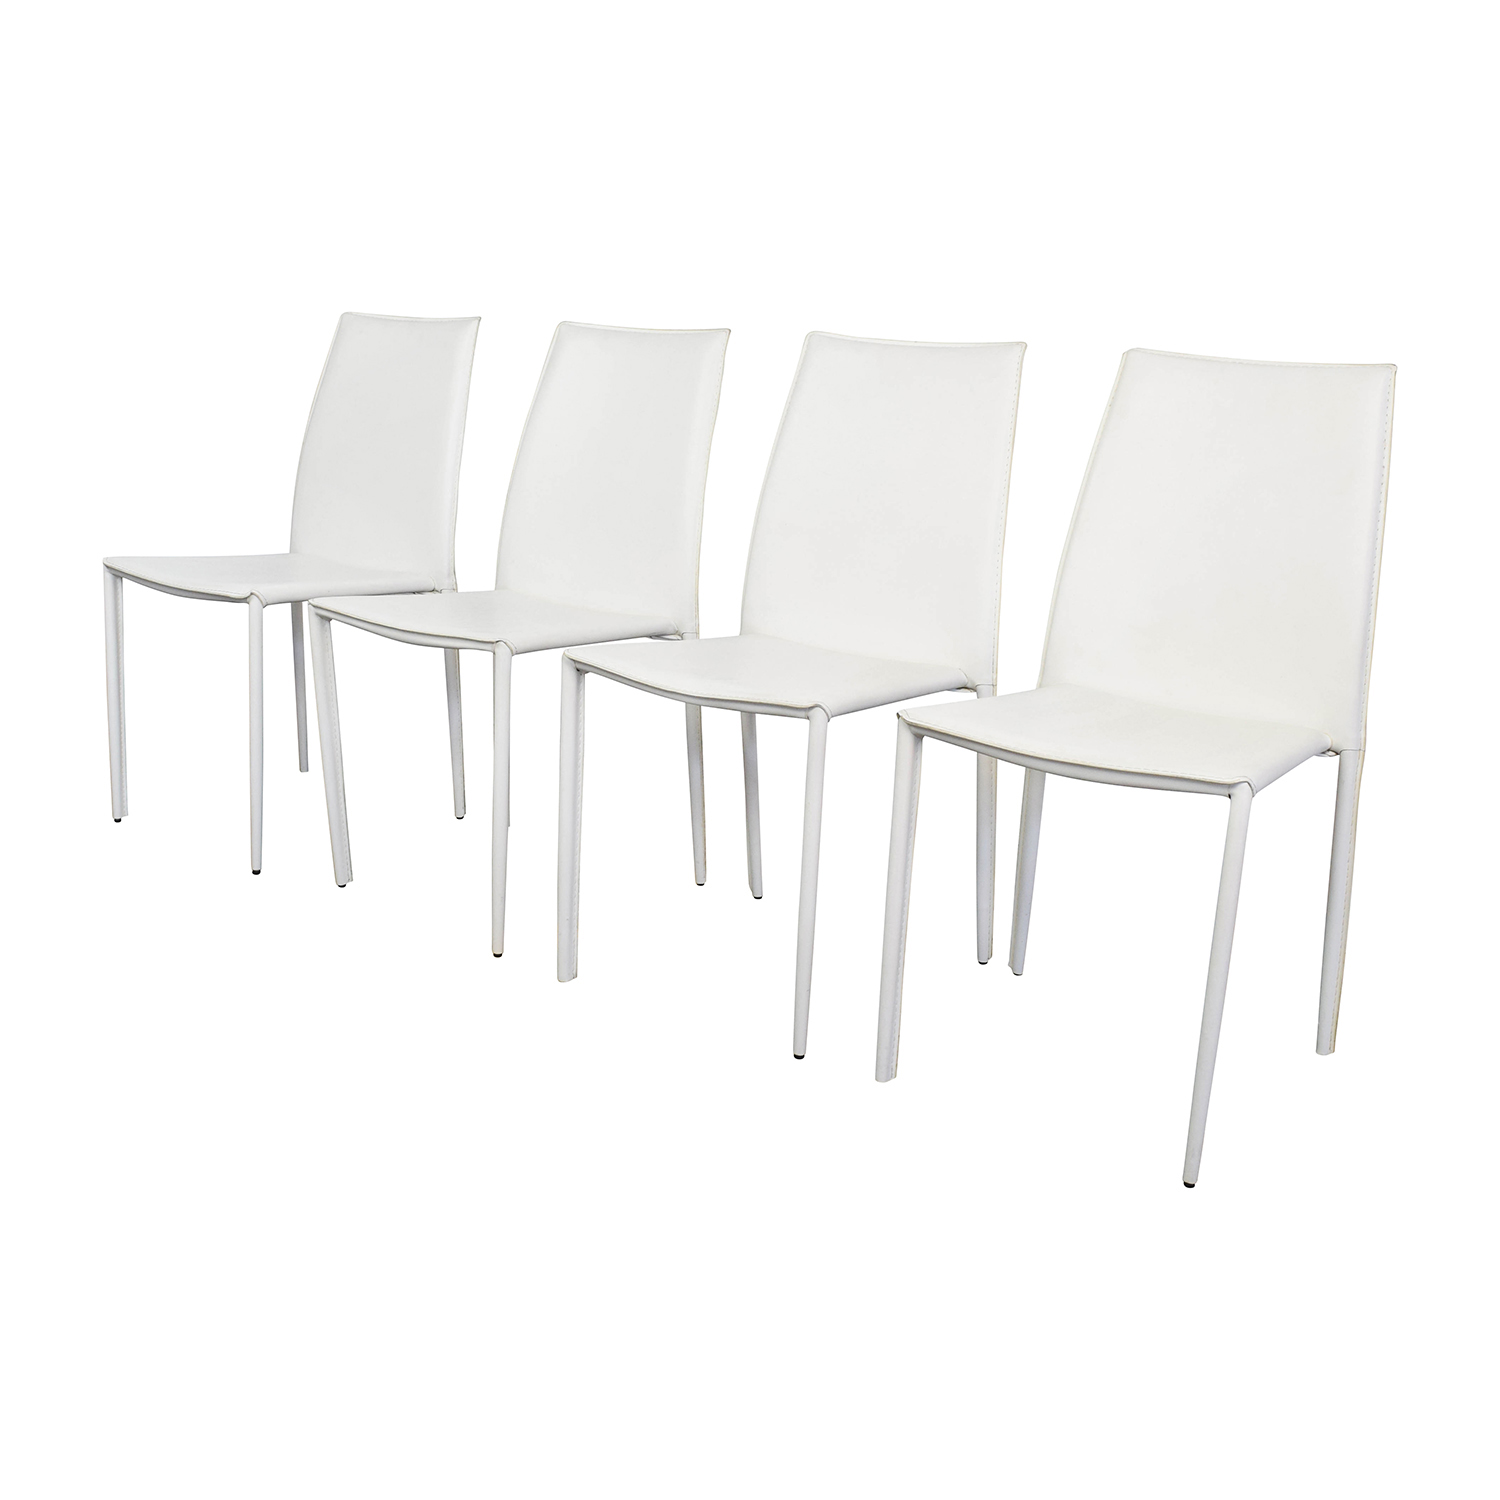 all modern all modern white leather dining chairs chairs .  off  all modern all modern white leather dining chairs  chairs